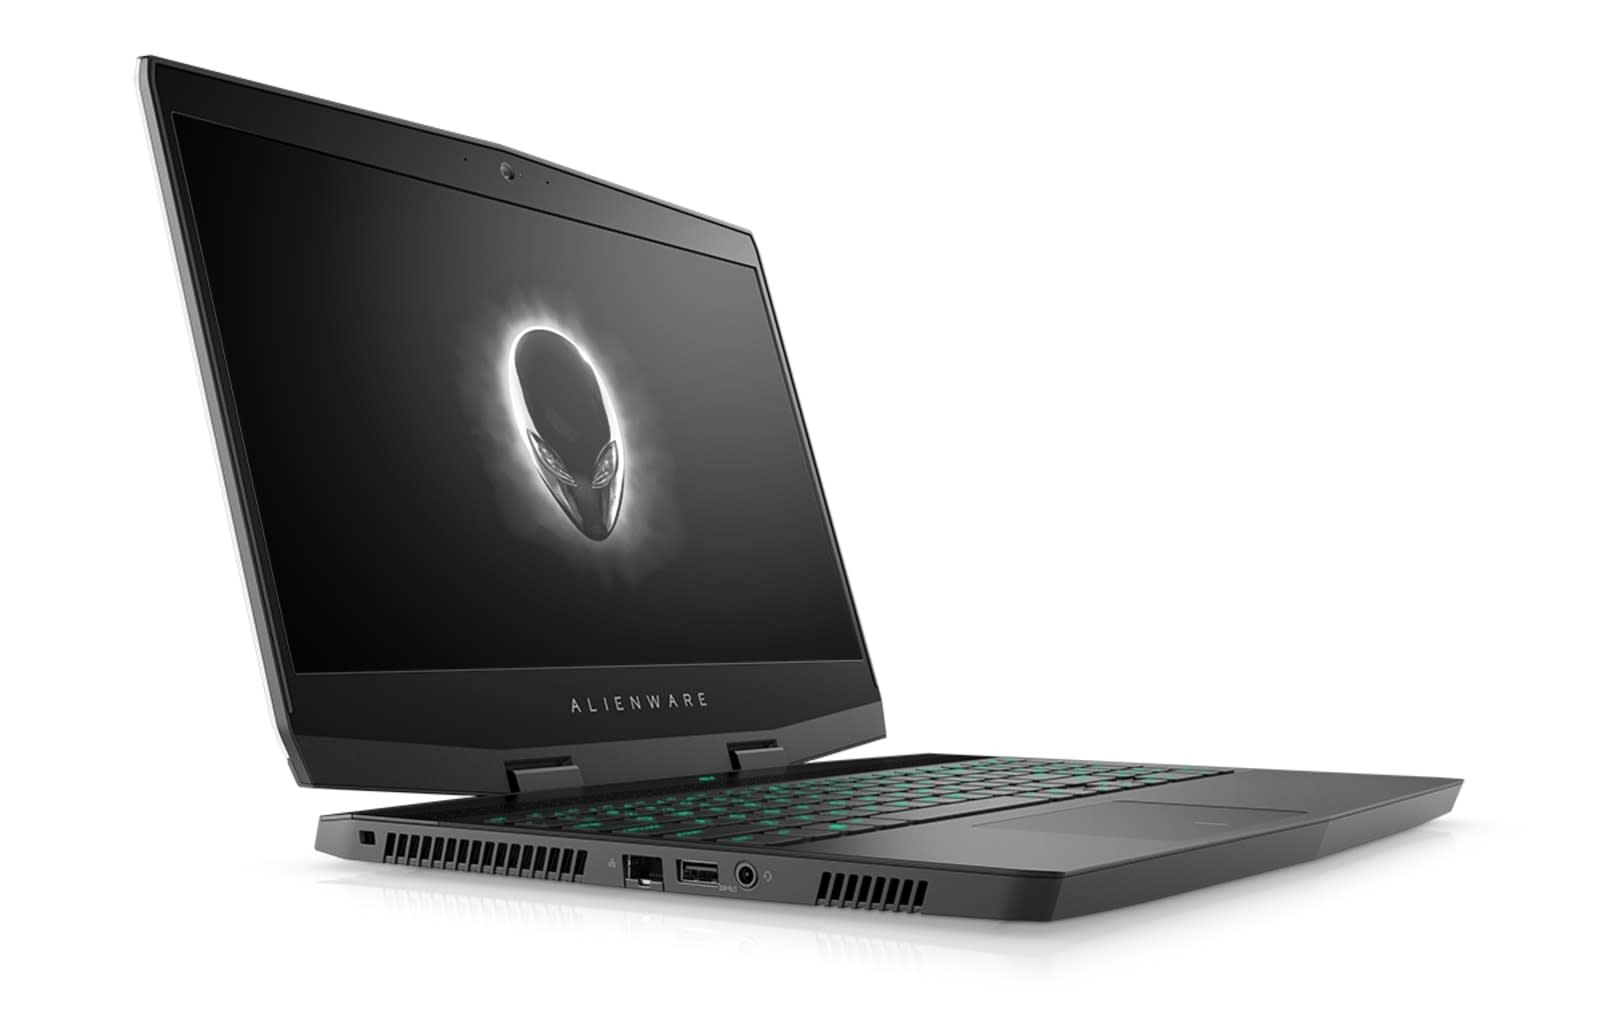 Alienware Finally Made A Thin And Light Gaming Laptop Engadget